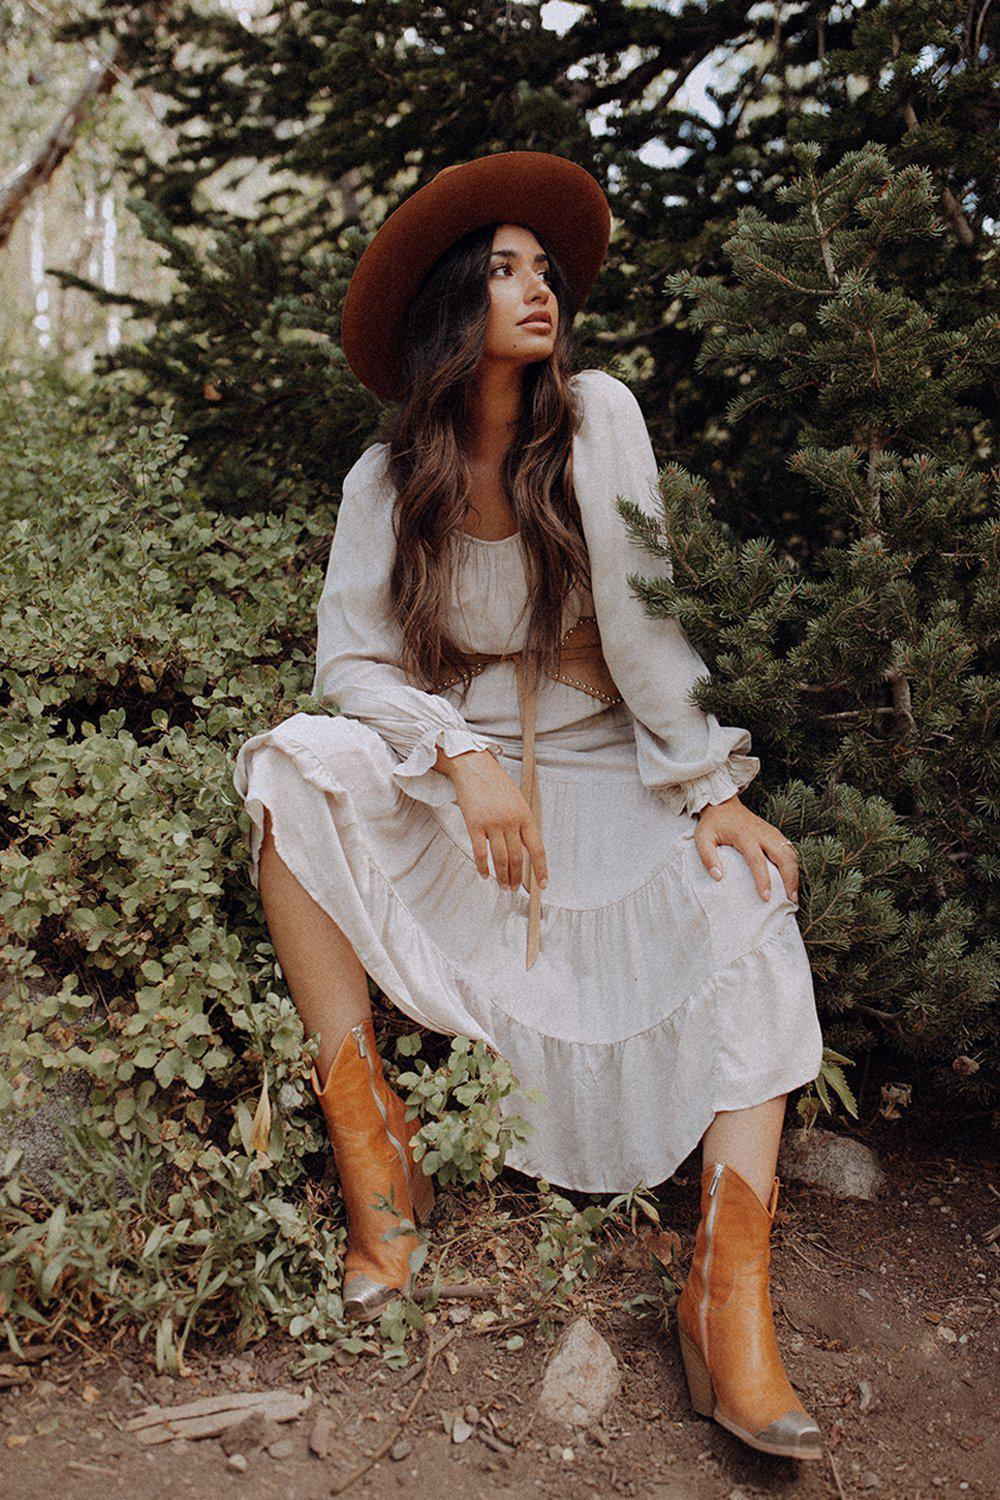 best_seller, Ghost of You Tiered Maxi Dress - FINAL SALE, Dress, women's clothing, dresses, skirts, coats, jackets, shoes, boots, tops, tee shirts, jeans, free people, levi's, rollas, jumpsuits, bottoms, tops, sweaters, pullovers, pants, shorts, sweats,.